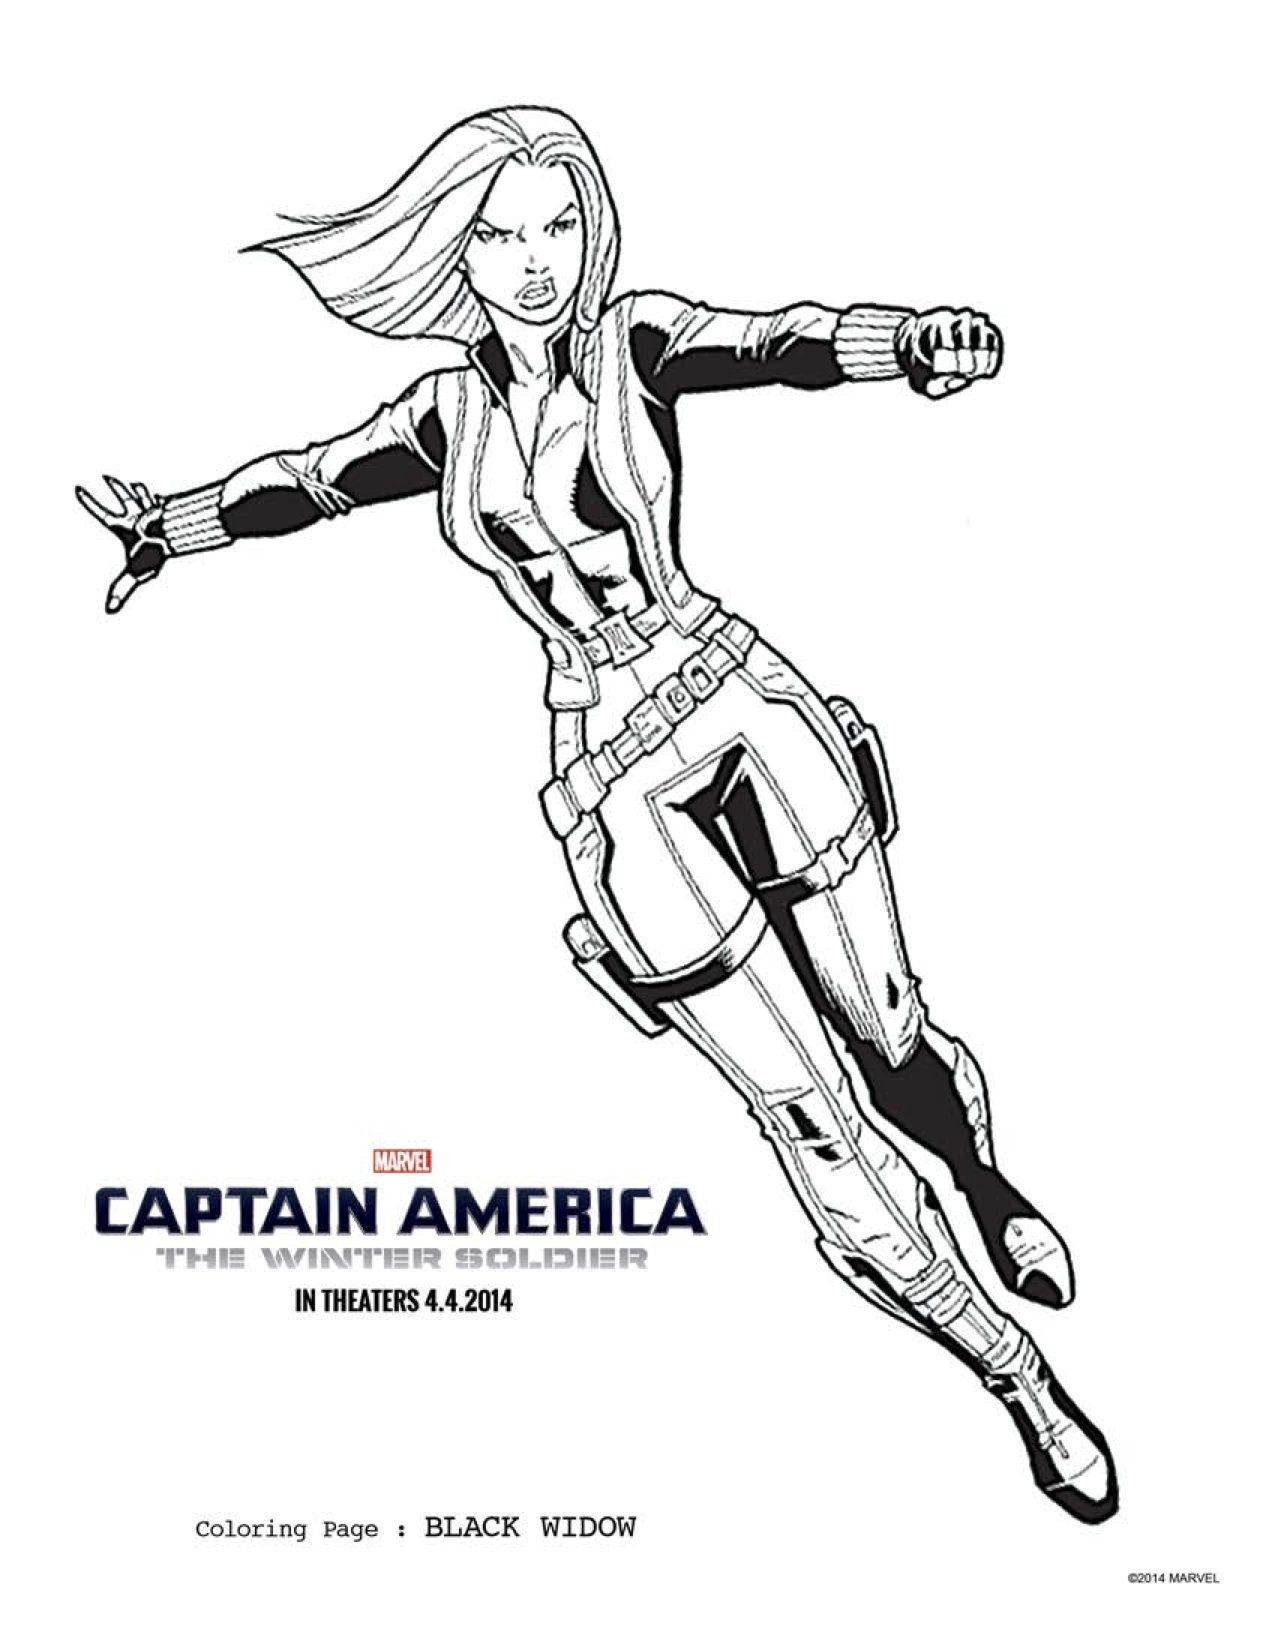 2 CAPTAIN AMERICA THE WINTER SOLDIER coloring sheets to keep